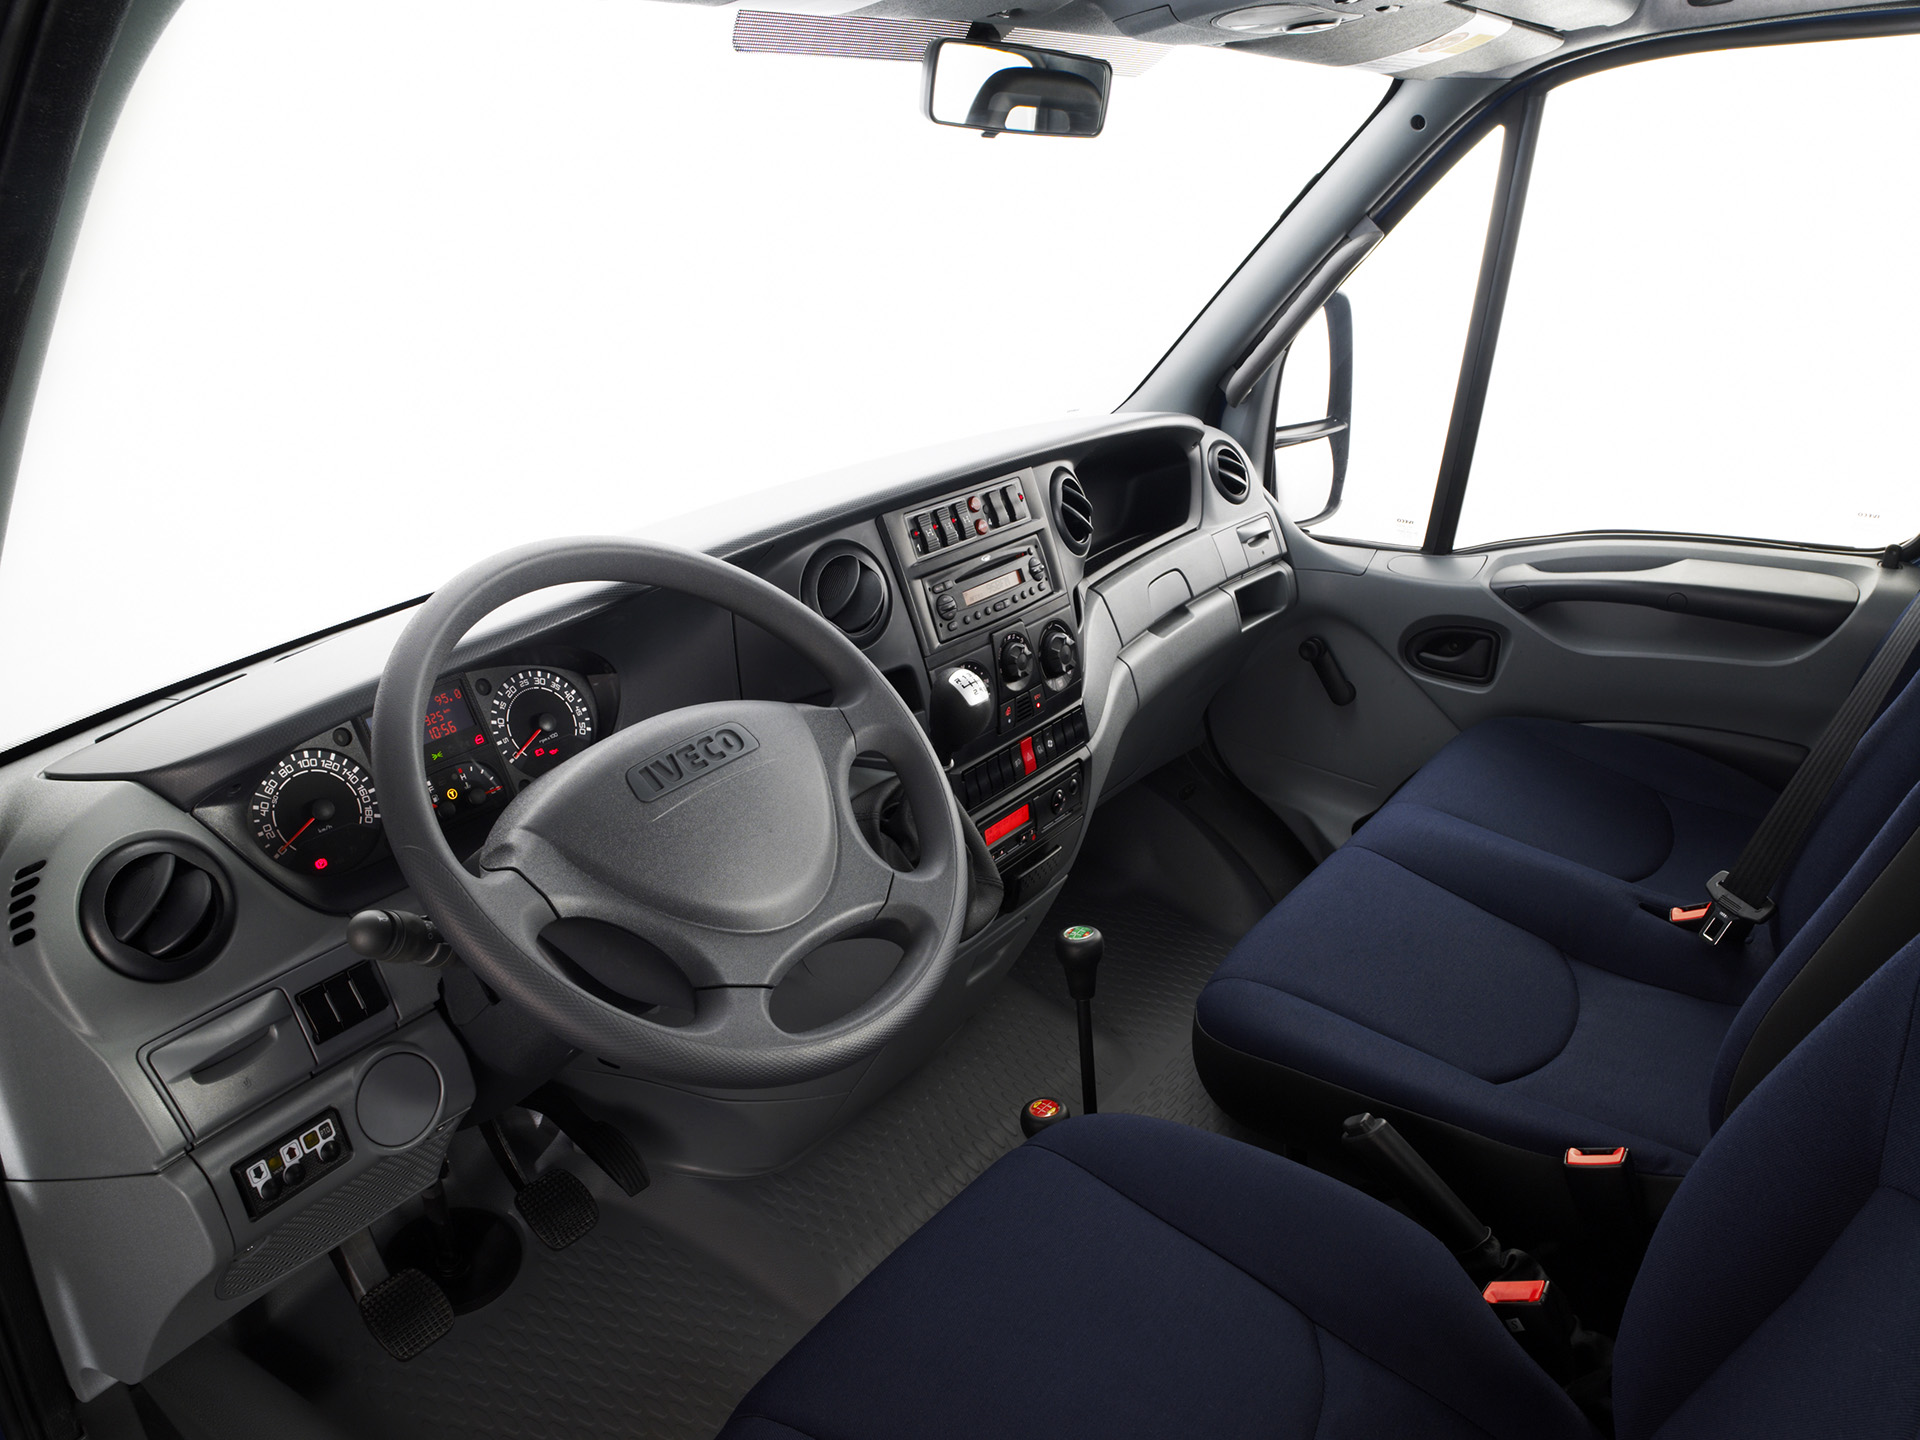 IVECO Daily 4x4 picture # 53971 | IVECO photo gallery | CarsBase.com